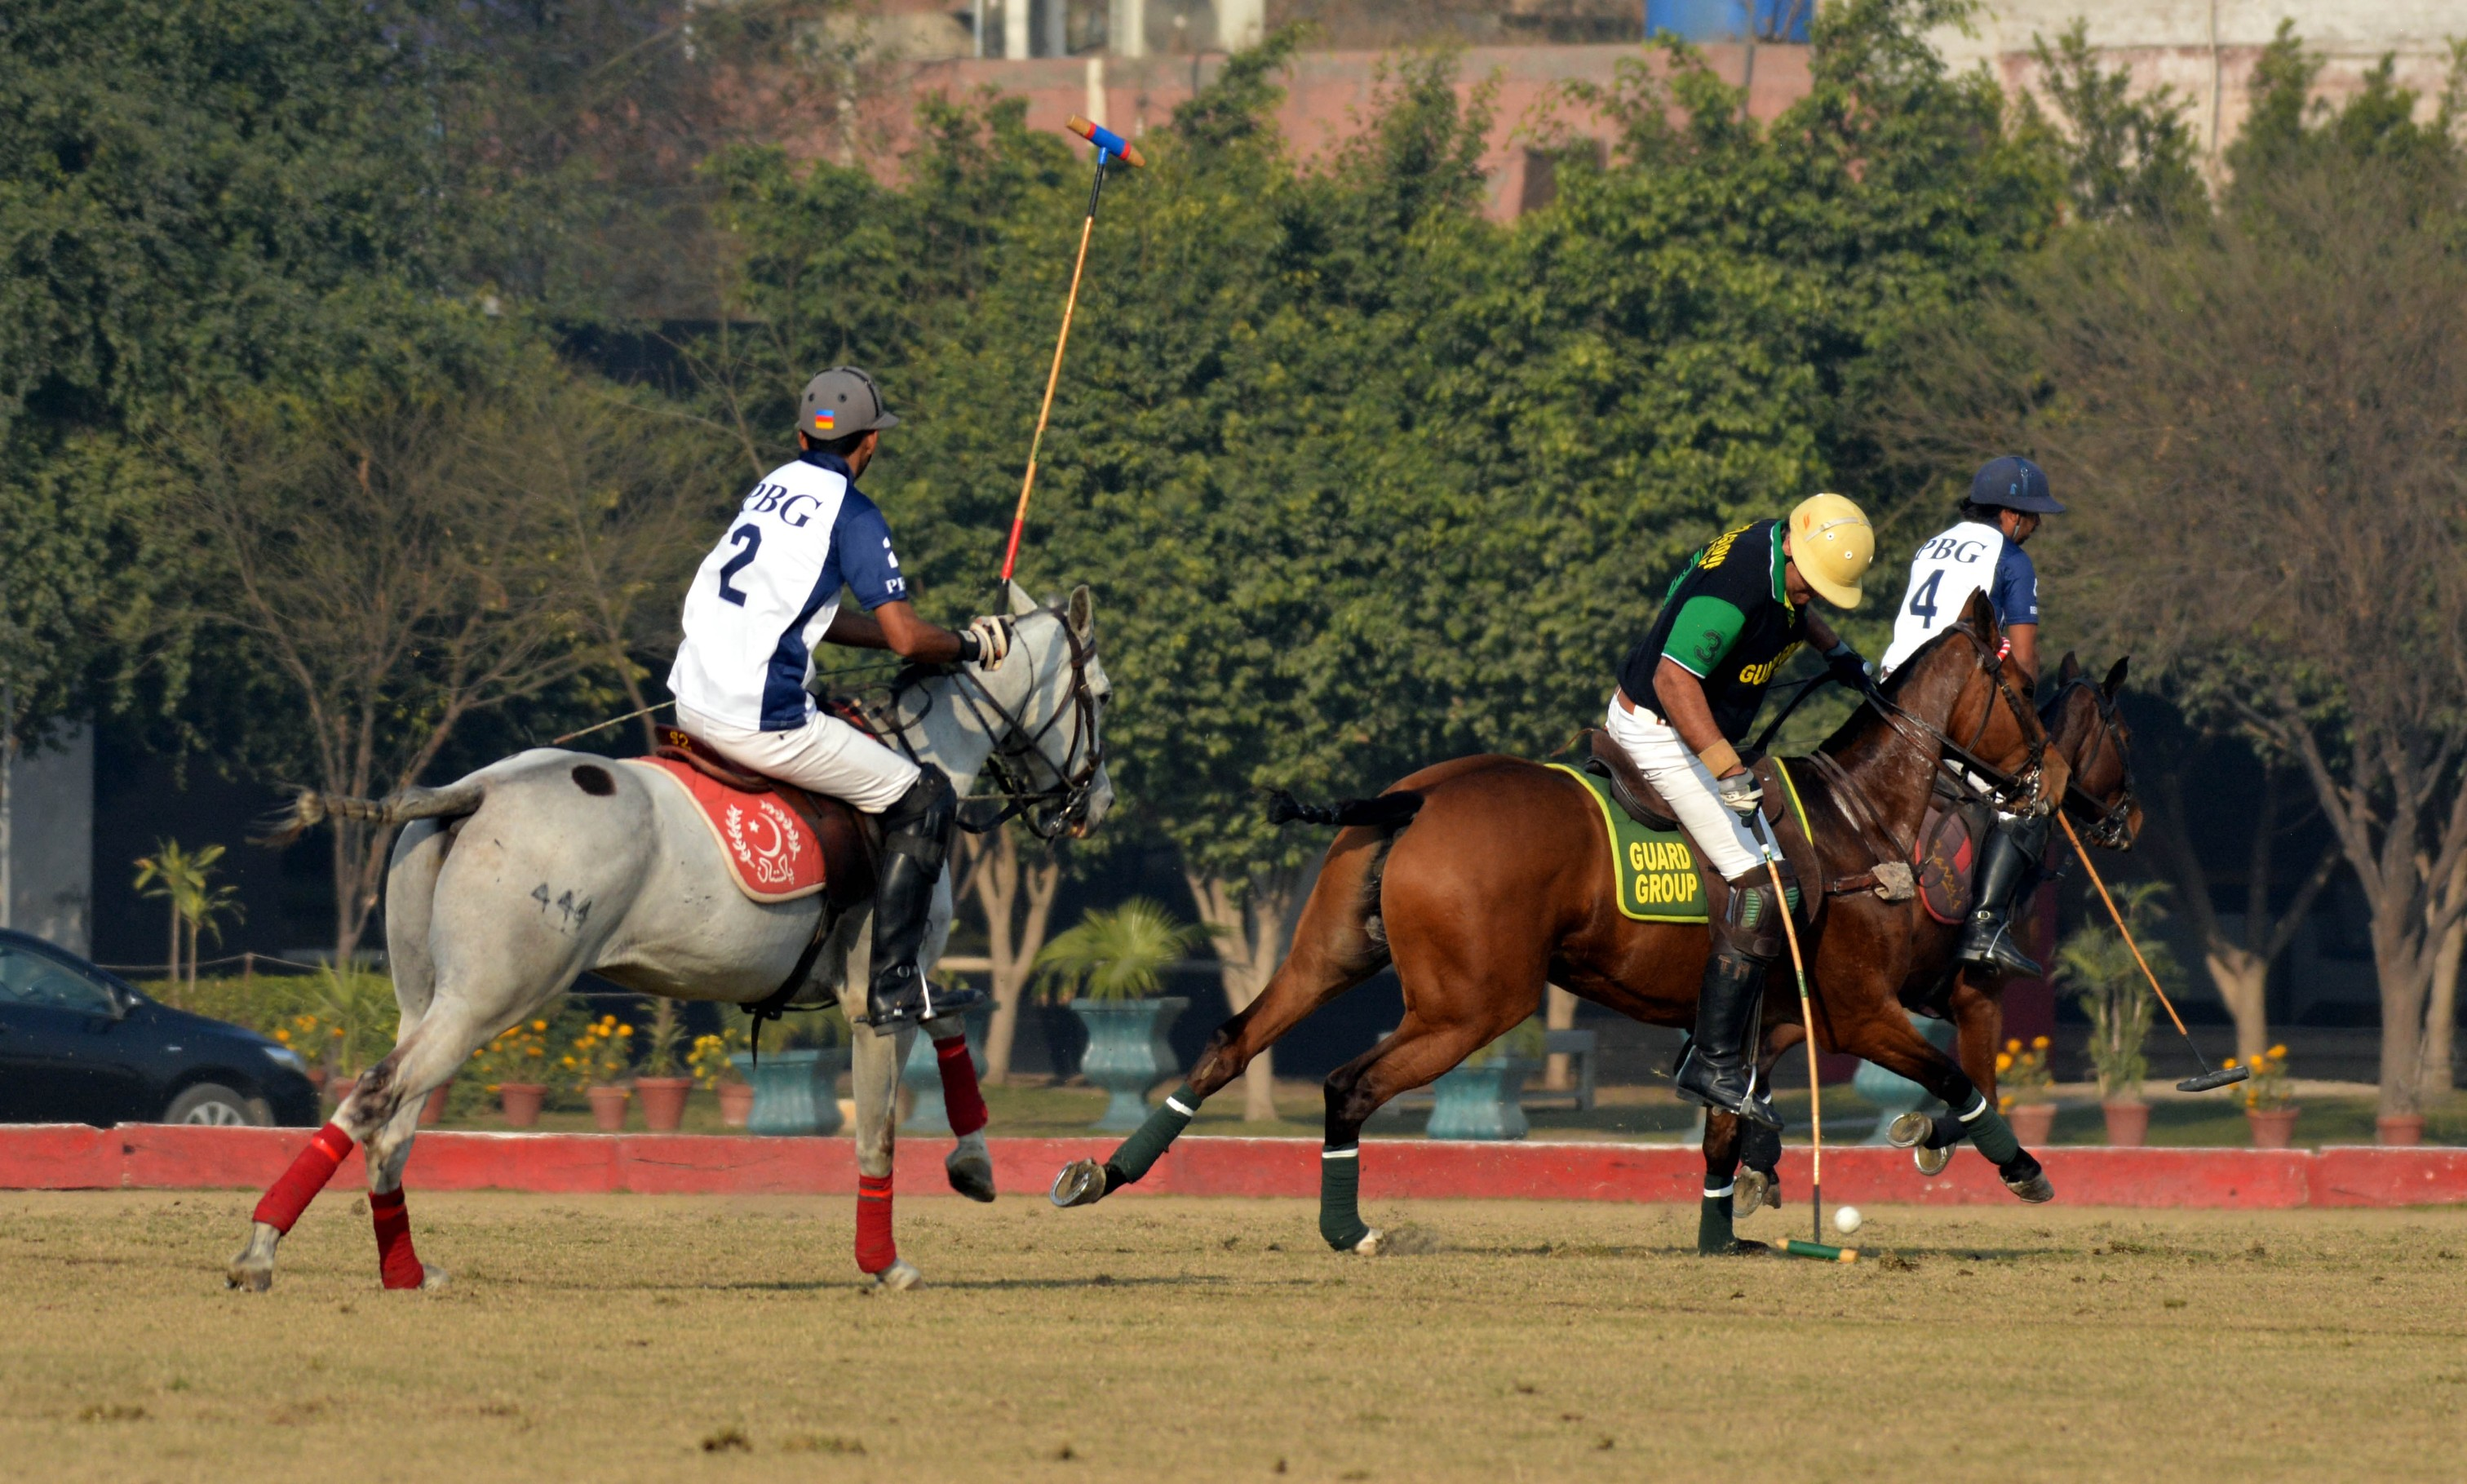 Battle Axe Polo Cup 2019